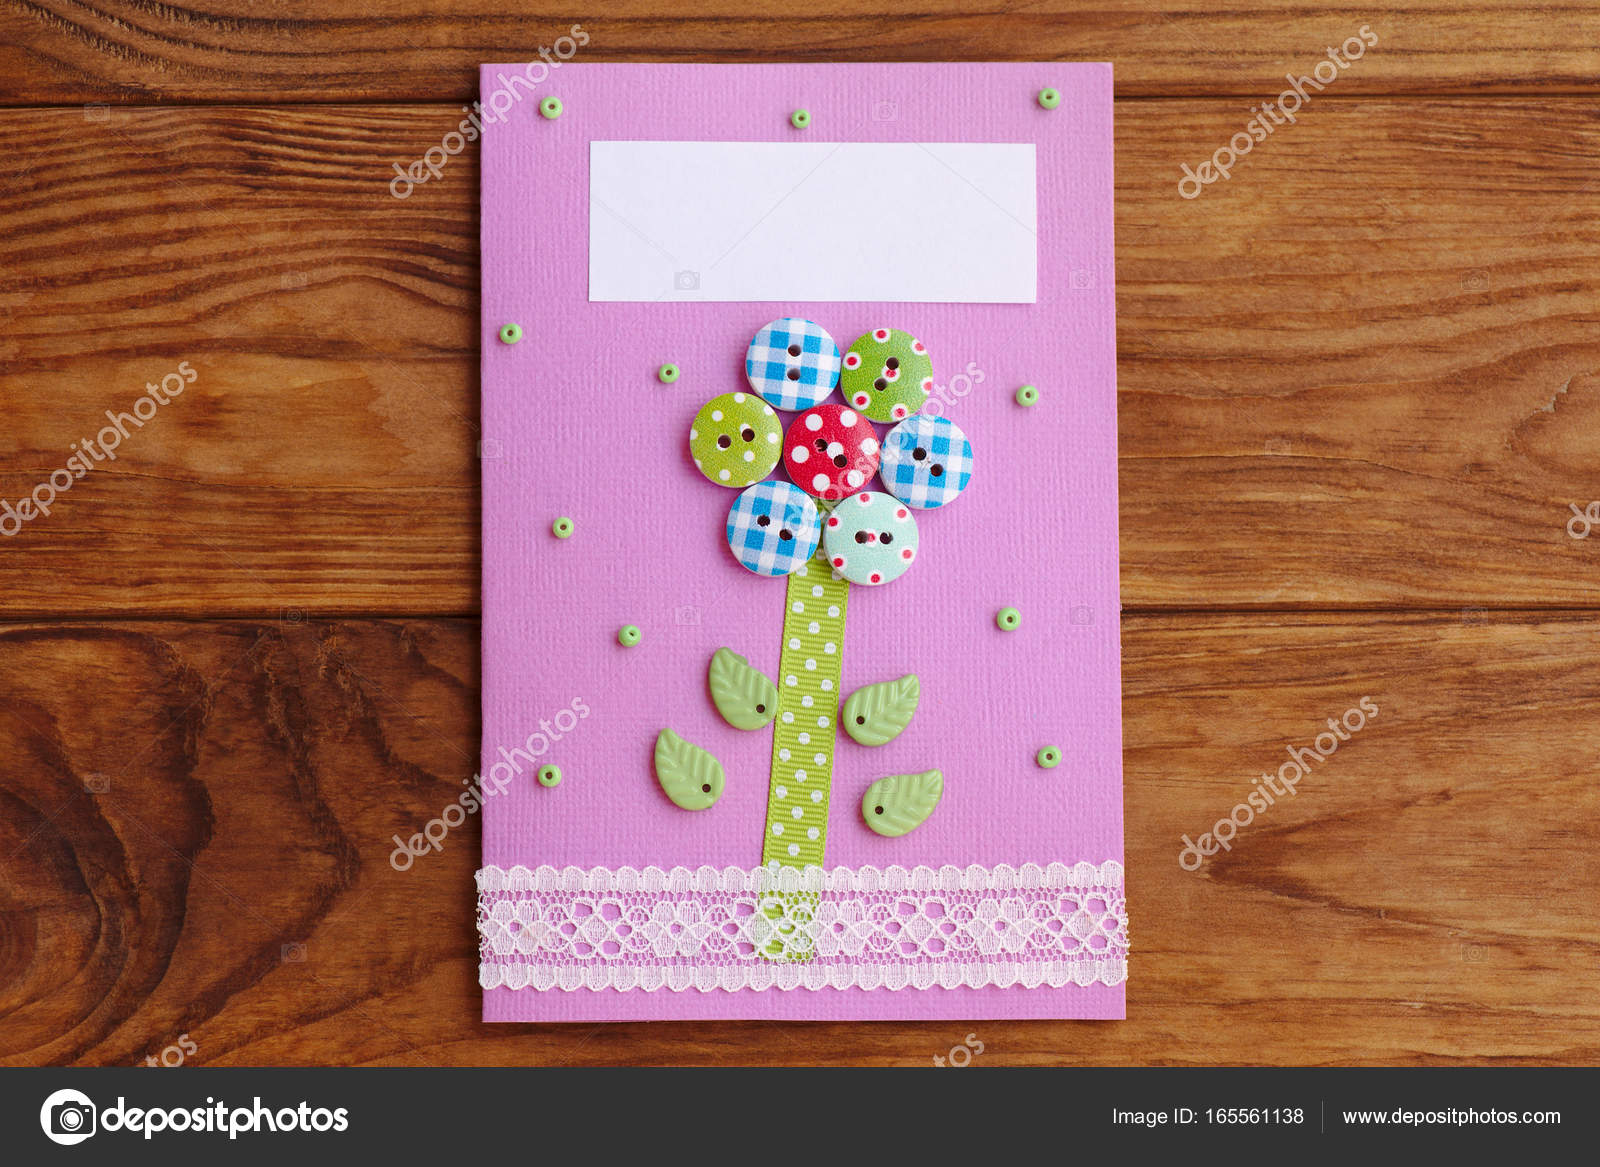 Mothers day or mom birthday greeting card with flower isolated on a mothers day or mom birthday greeting card with flower isolated on a wooden background easy handmade card to make in school or at home kristyandbryce Choice Image